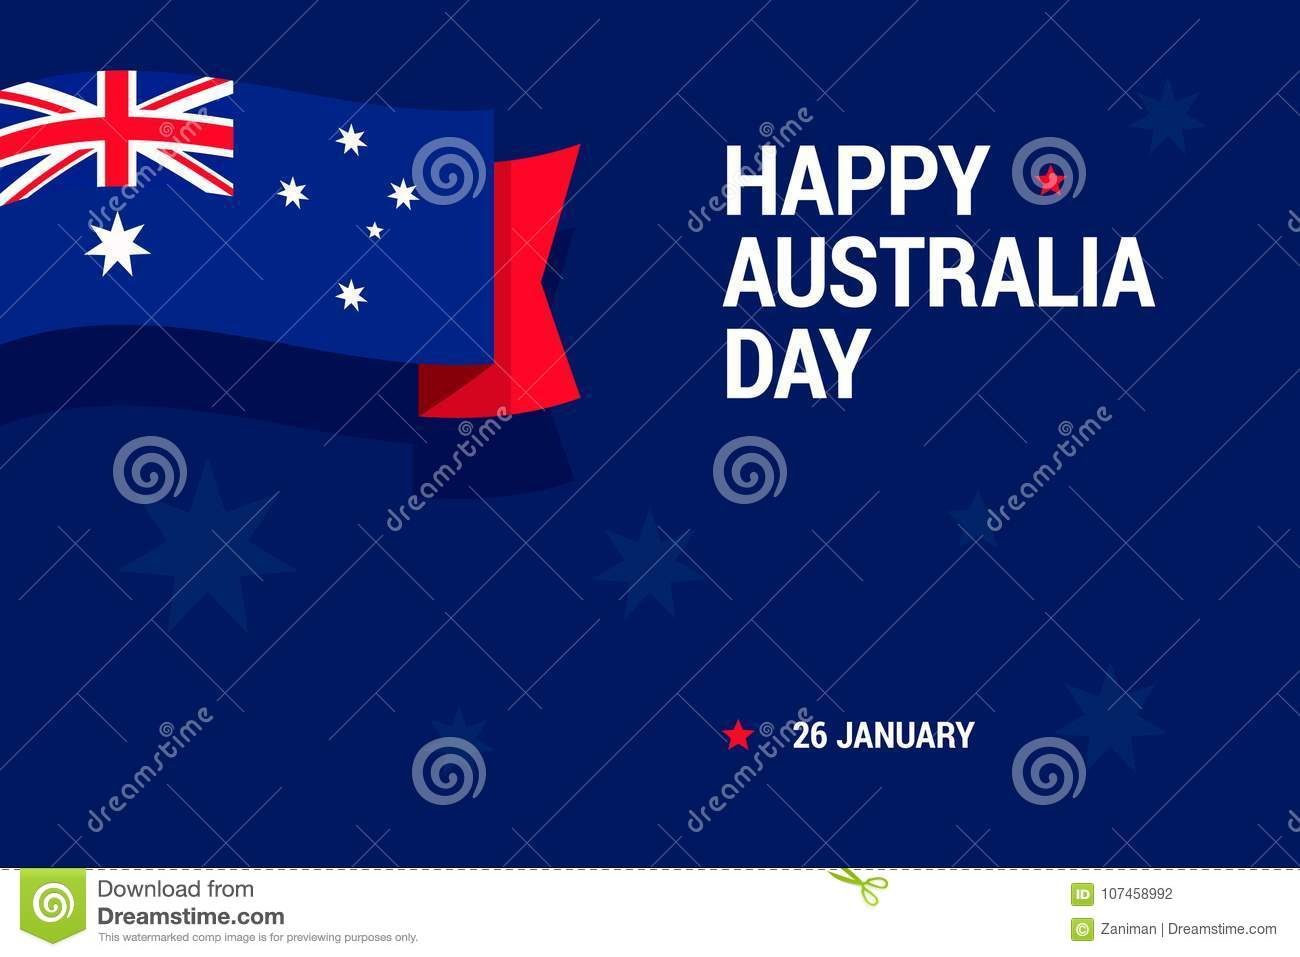 Happy Australia Day Celebration Card With National Flag For Print Or